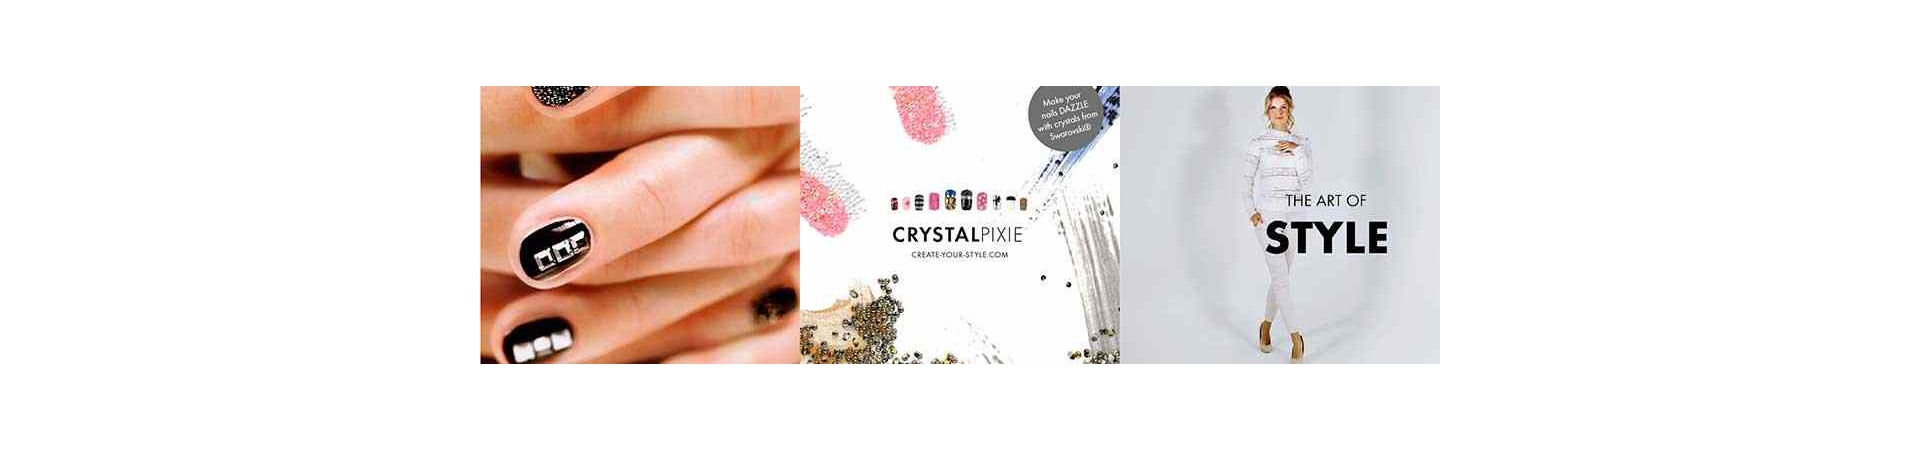 Swarovski Nail Products - Crystal Pixie Easy